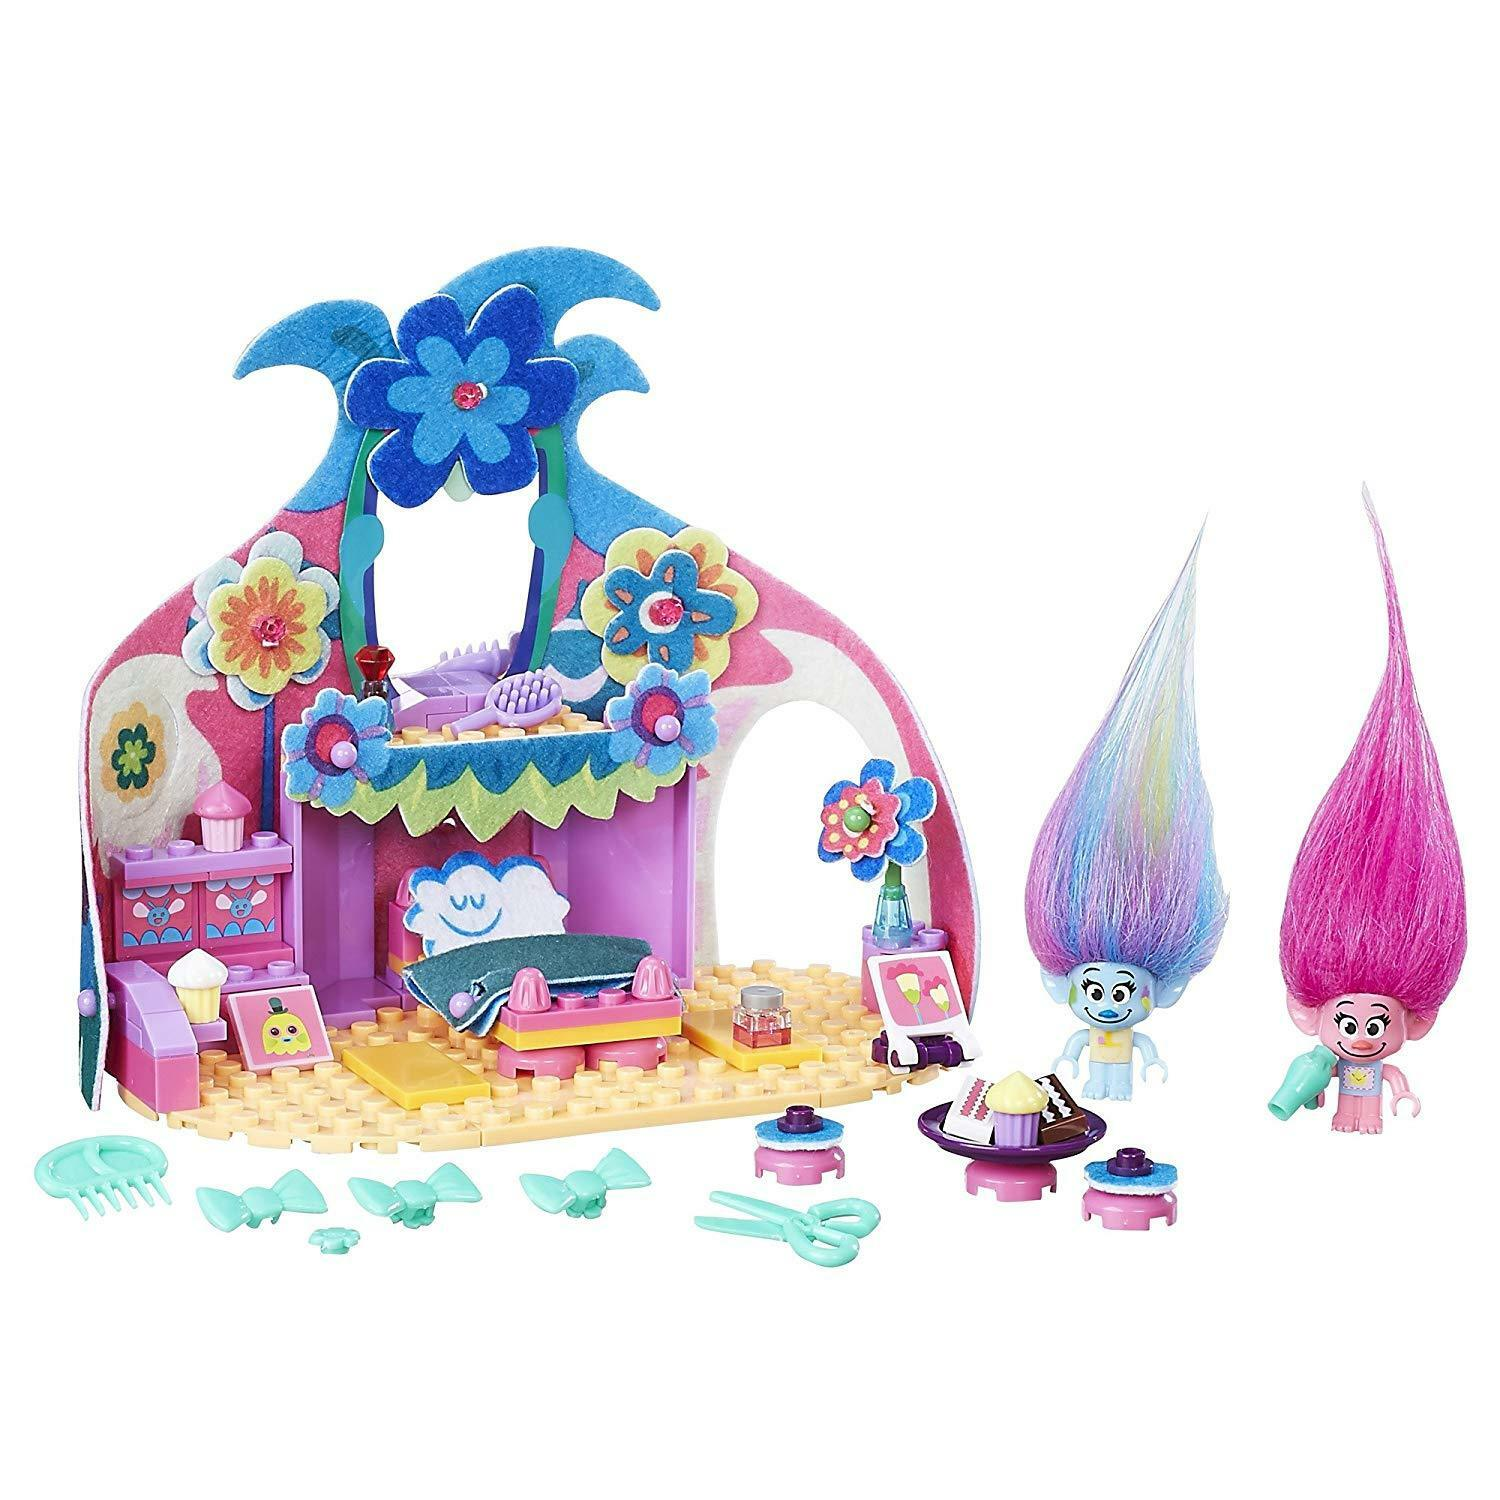 Trolls DreamWorks Poppy Happy Pod Playset Ages 6+ Toy Play Play Play Doll House Party Gift 675944